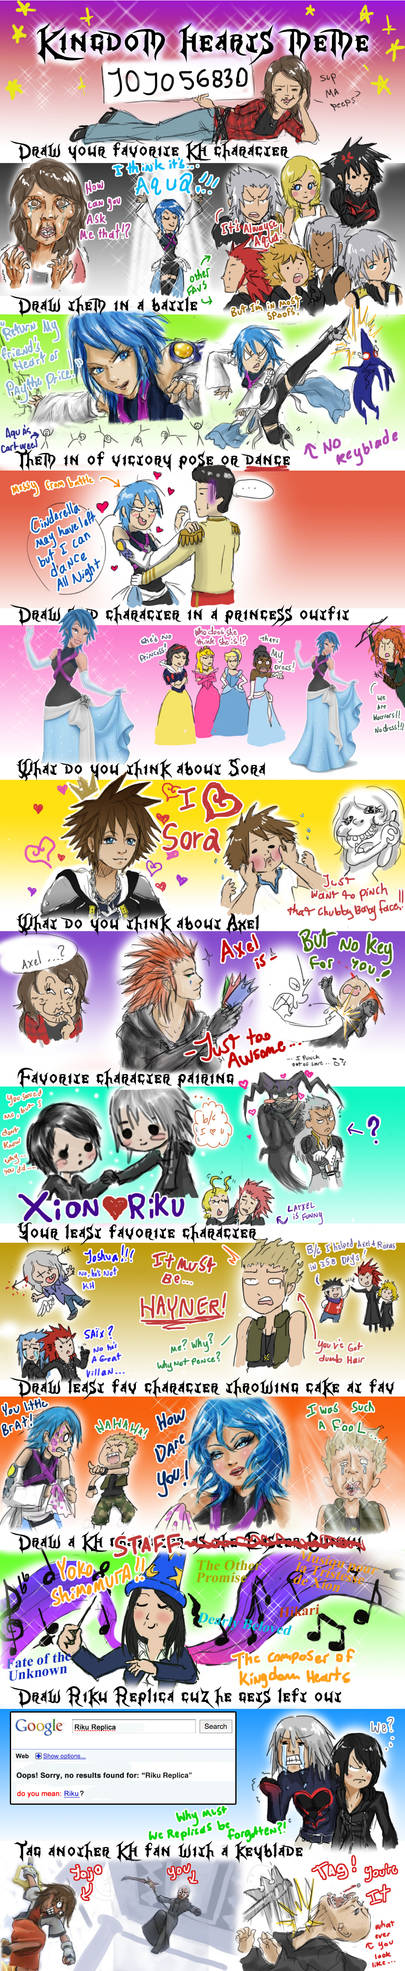 Kingdom hearts Meme by jojo56830